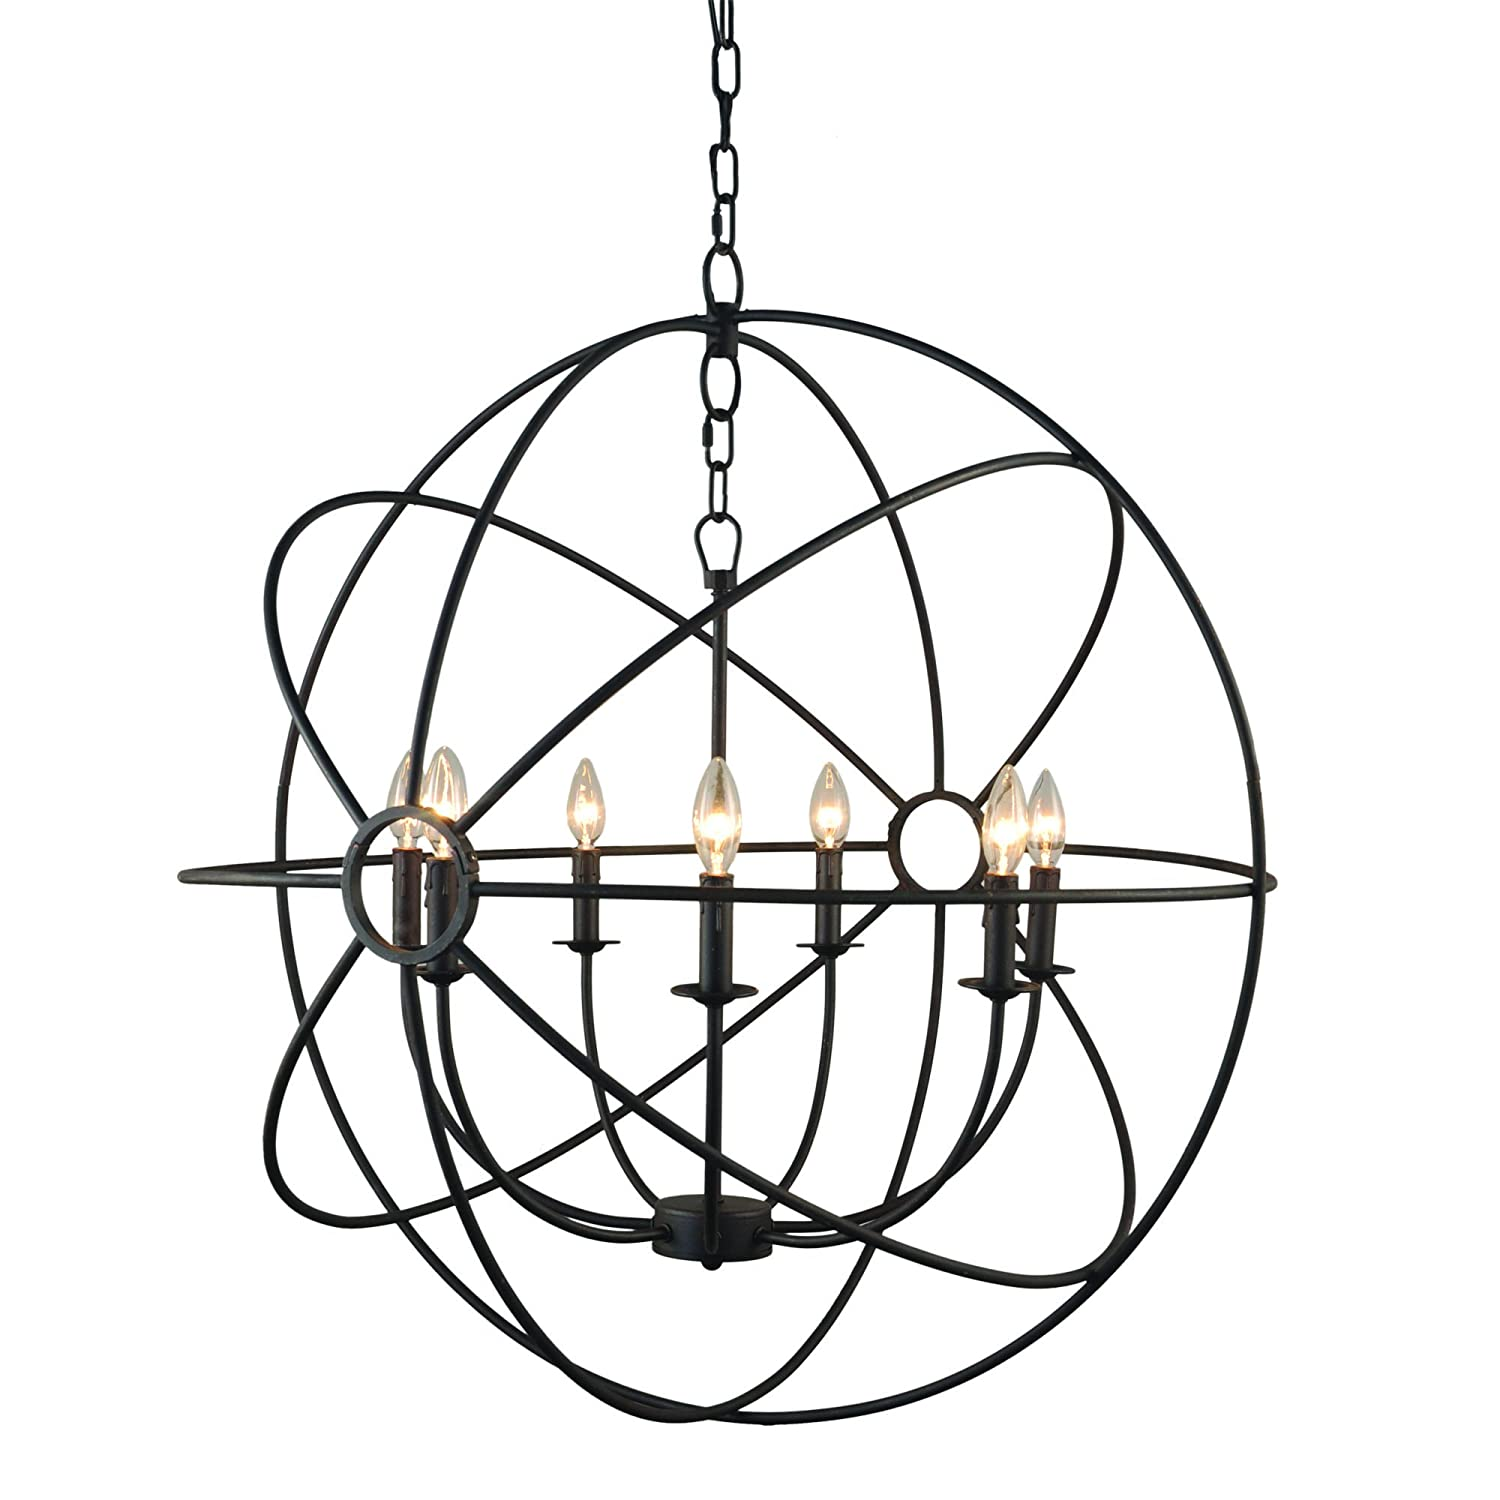 Yosemite Home Decor SCFP2005 7 RS 7 Lights Mini Chandelier Rustic